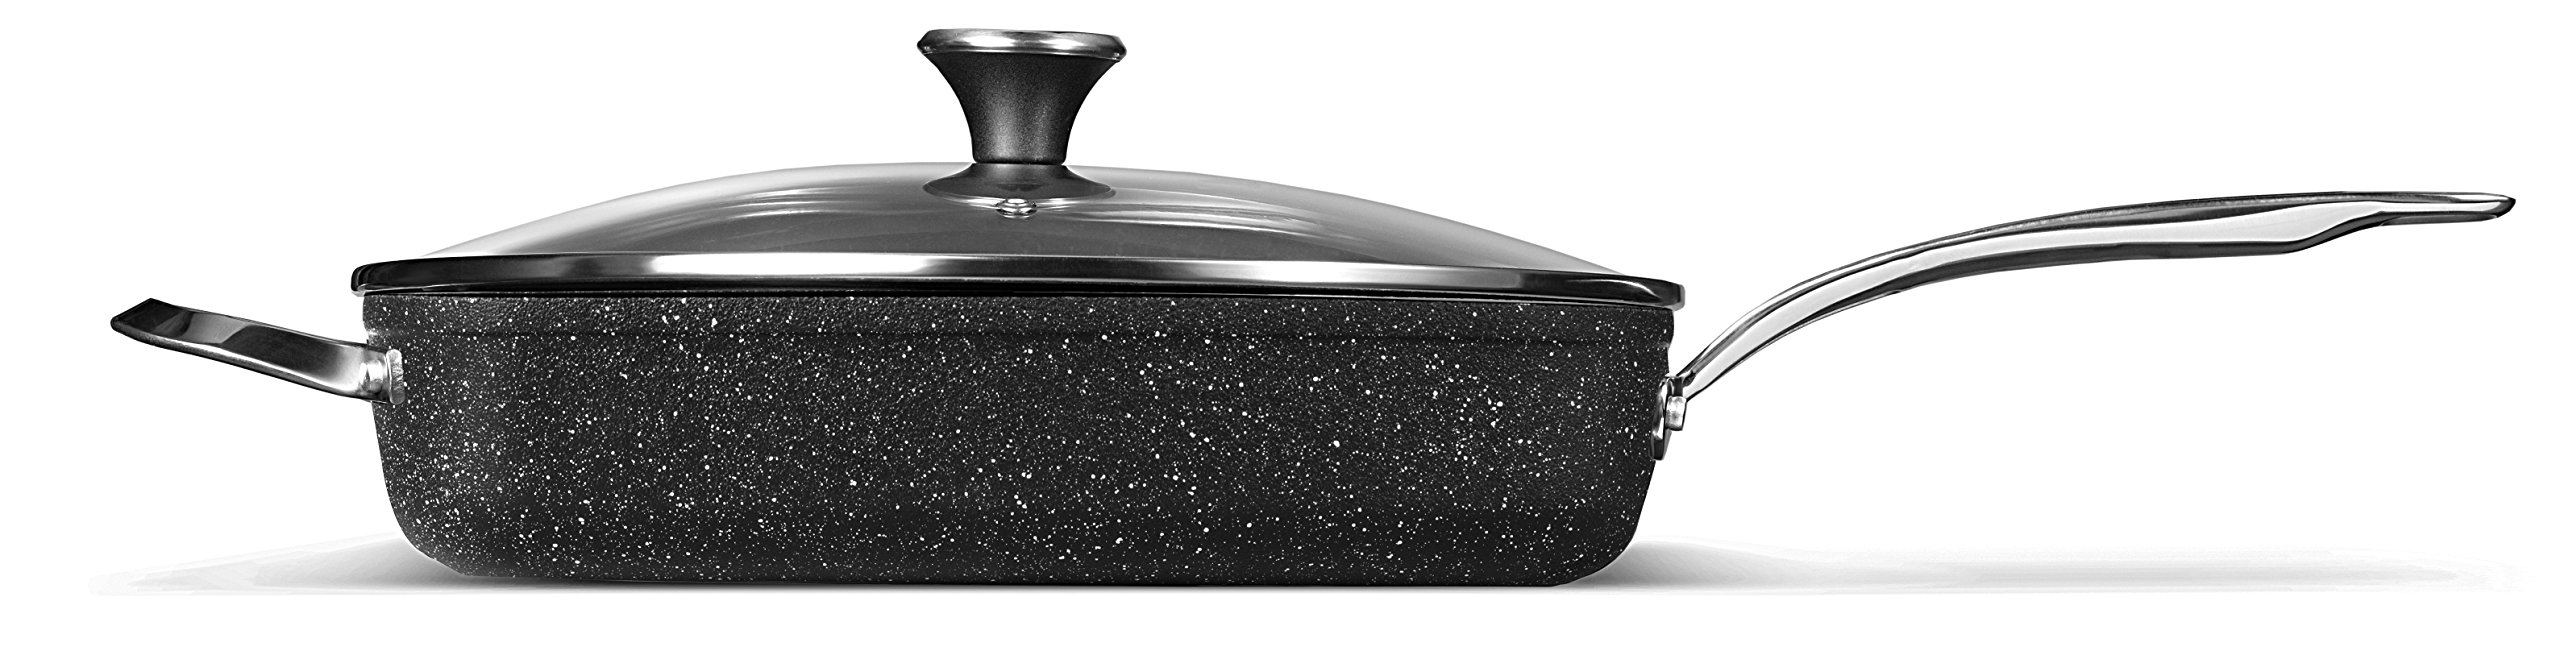 THE ROCK by Starfrit  060744-002-0000 One-Pot 5.8-Quart Deep Fry Pan with Lid and Stainless Steel Riveted Handles, Black